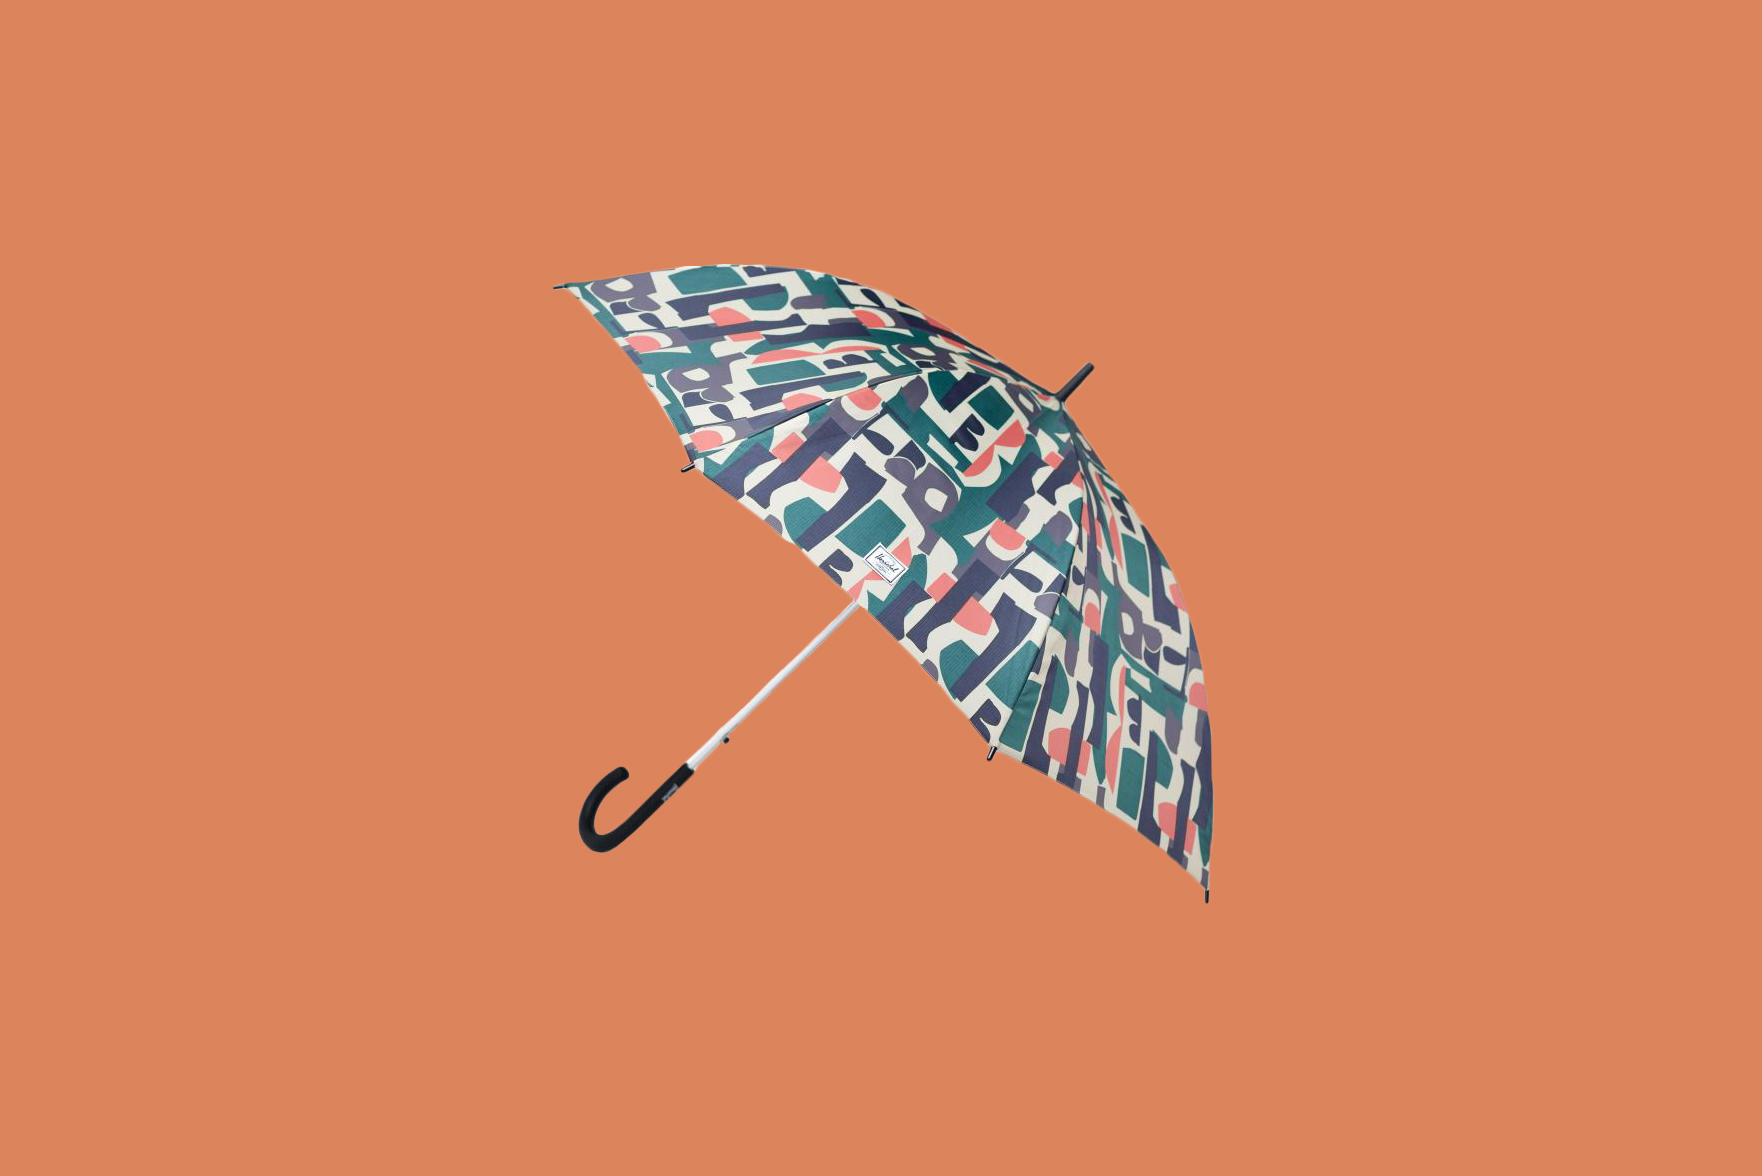 Herschel Supply Co. Voyage Classic Umbrella